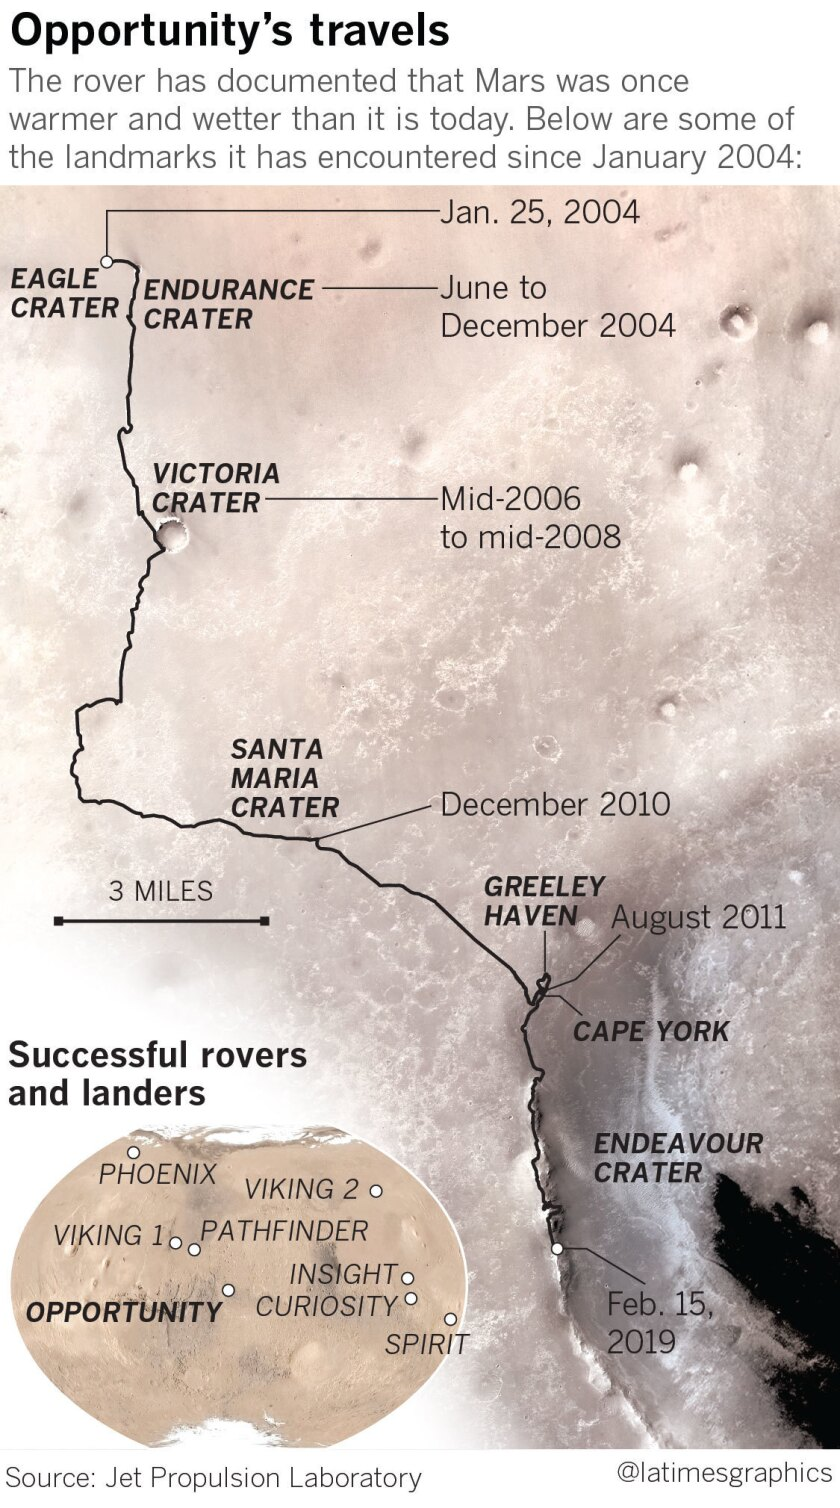 Opportunity rover's journey on Mars